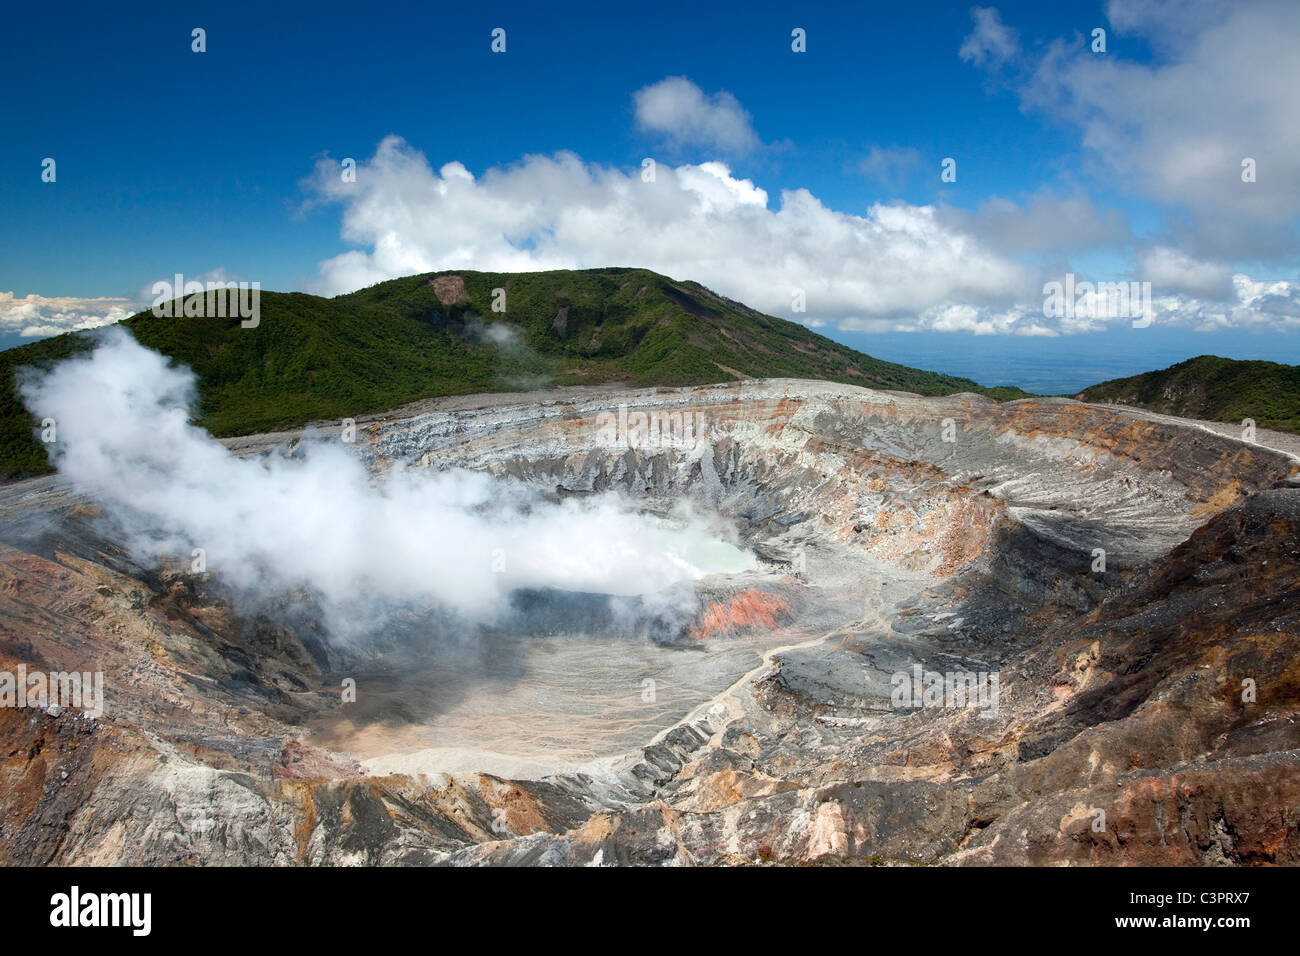 At the edge of an active crater volcano in Poas Volcano National Park in Costa Rica. - Stock Image